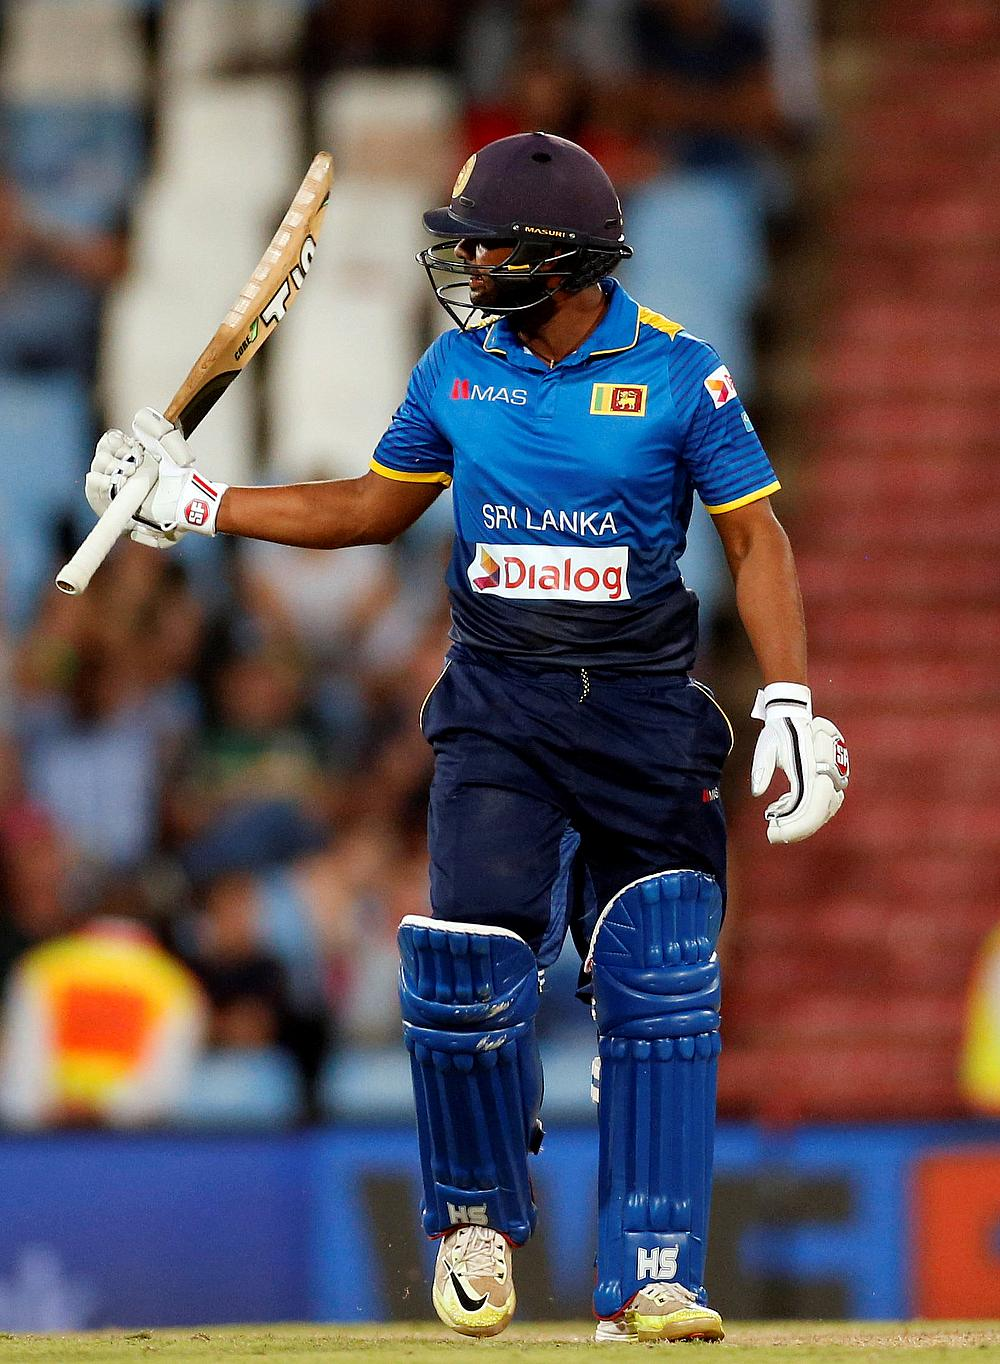 Asela Gunaratne scored two consecutive fifties in two T20Is against Australia